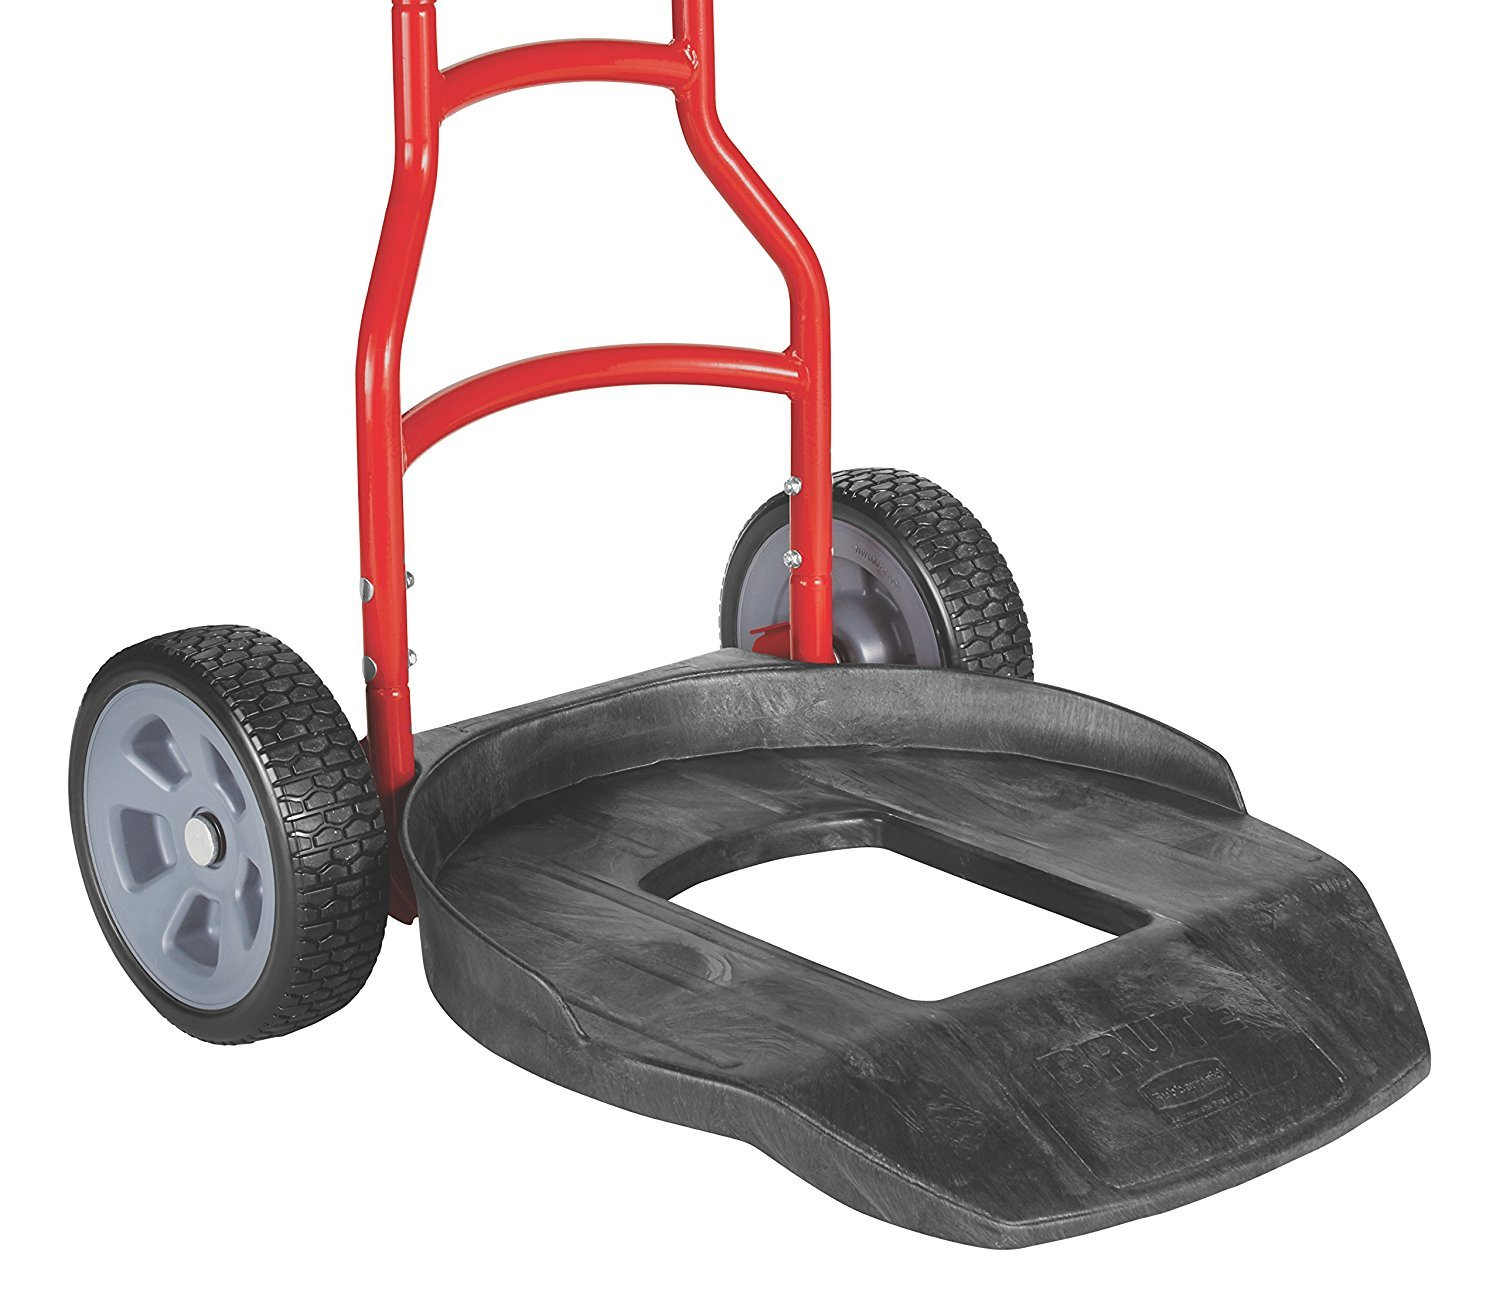 Rubbermaid Commercial Products Brute Construction and Landscape Dolly (1997410) by Rubbermaid Commercial Products (Image #6)